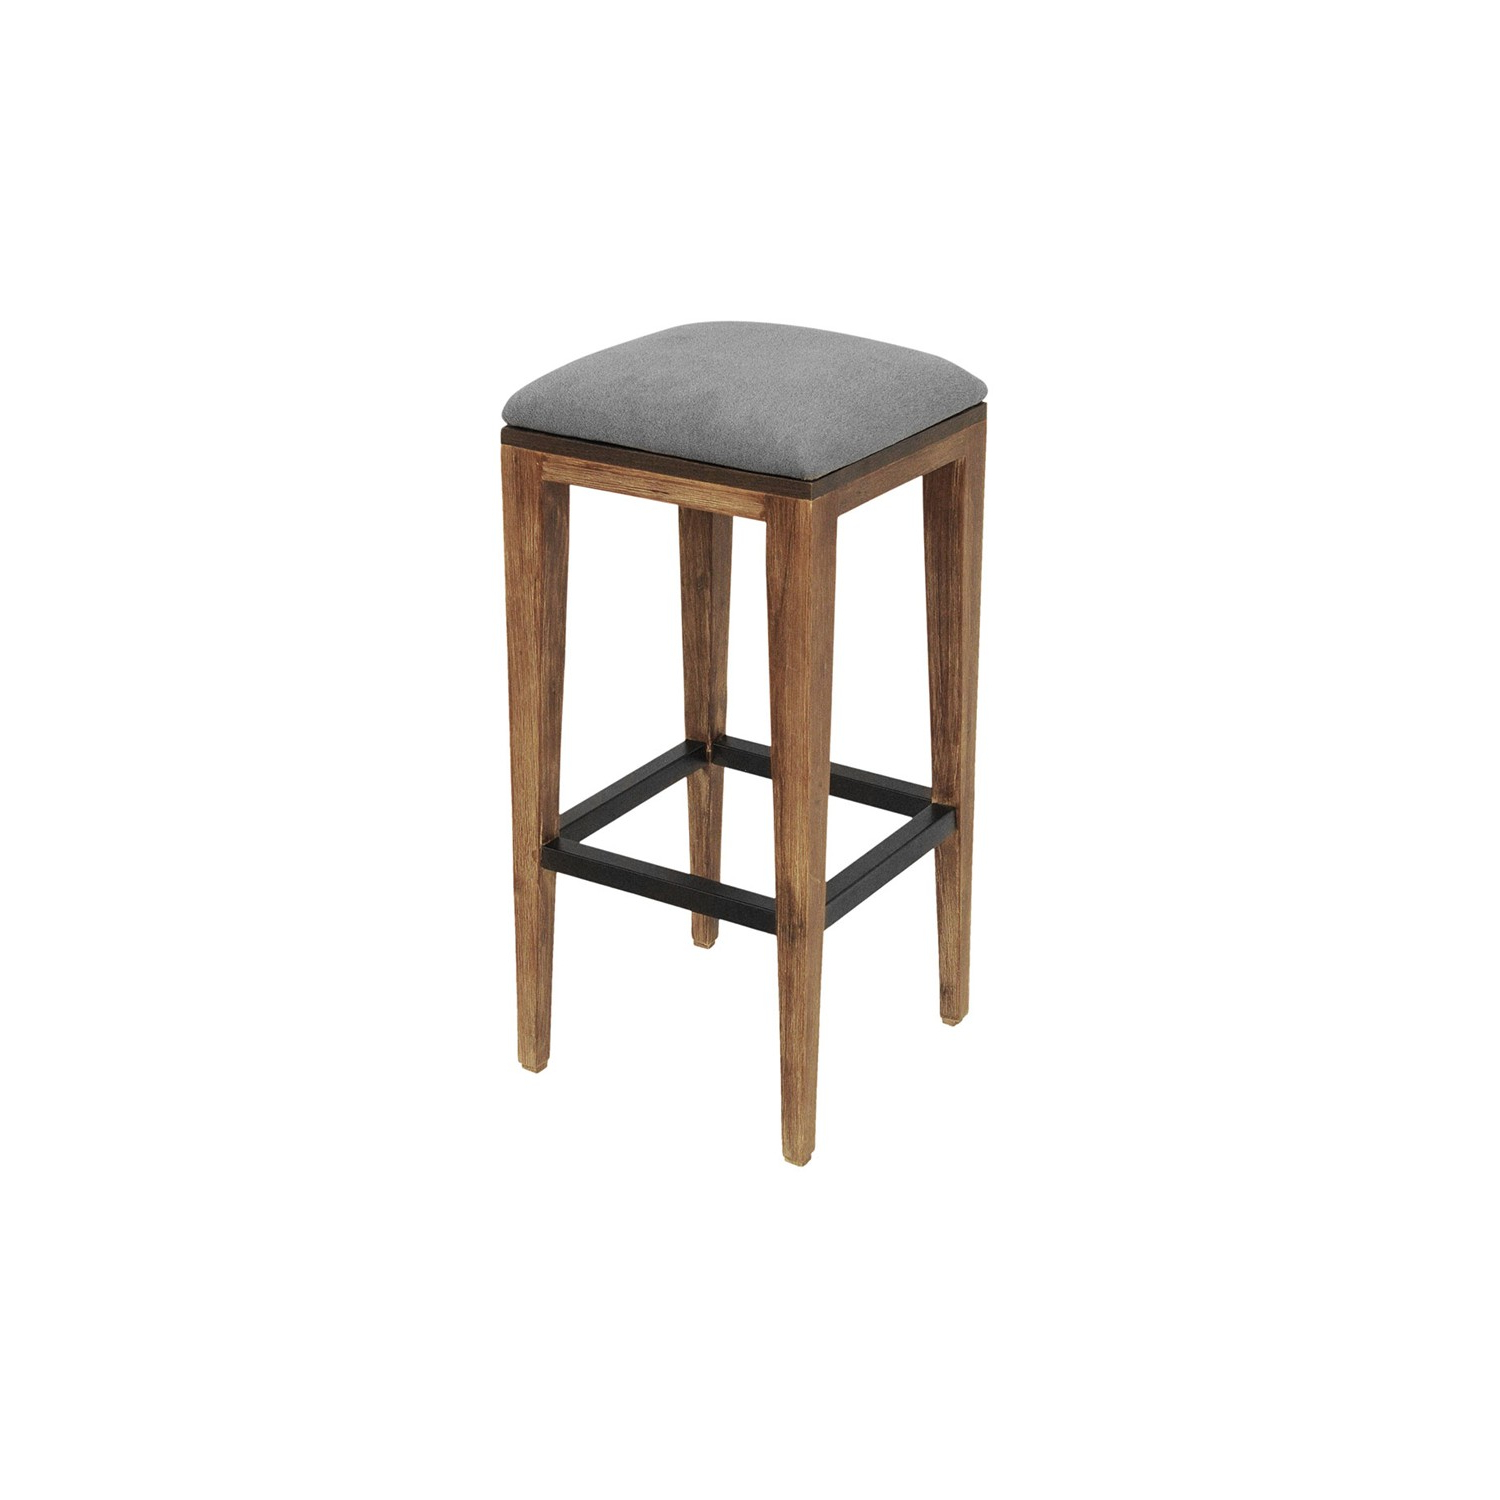 Cdi Furniture With Acacia Wood Medley Medium Dining Tables With Metal Base (View 25 of 26)